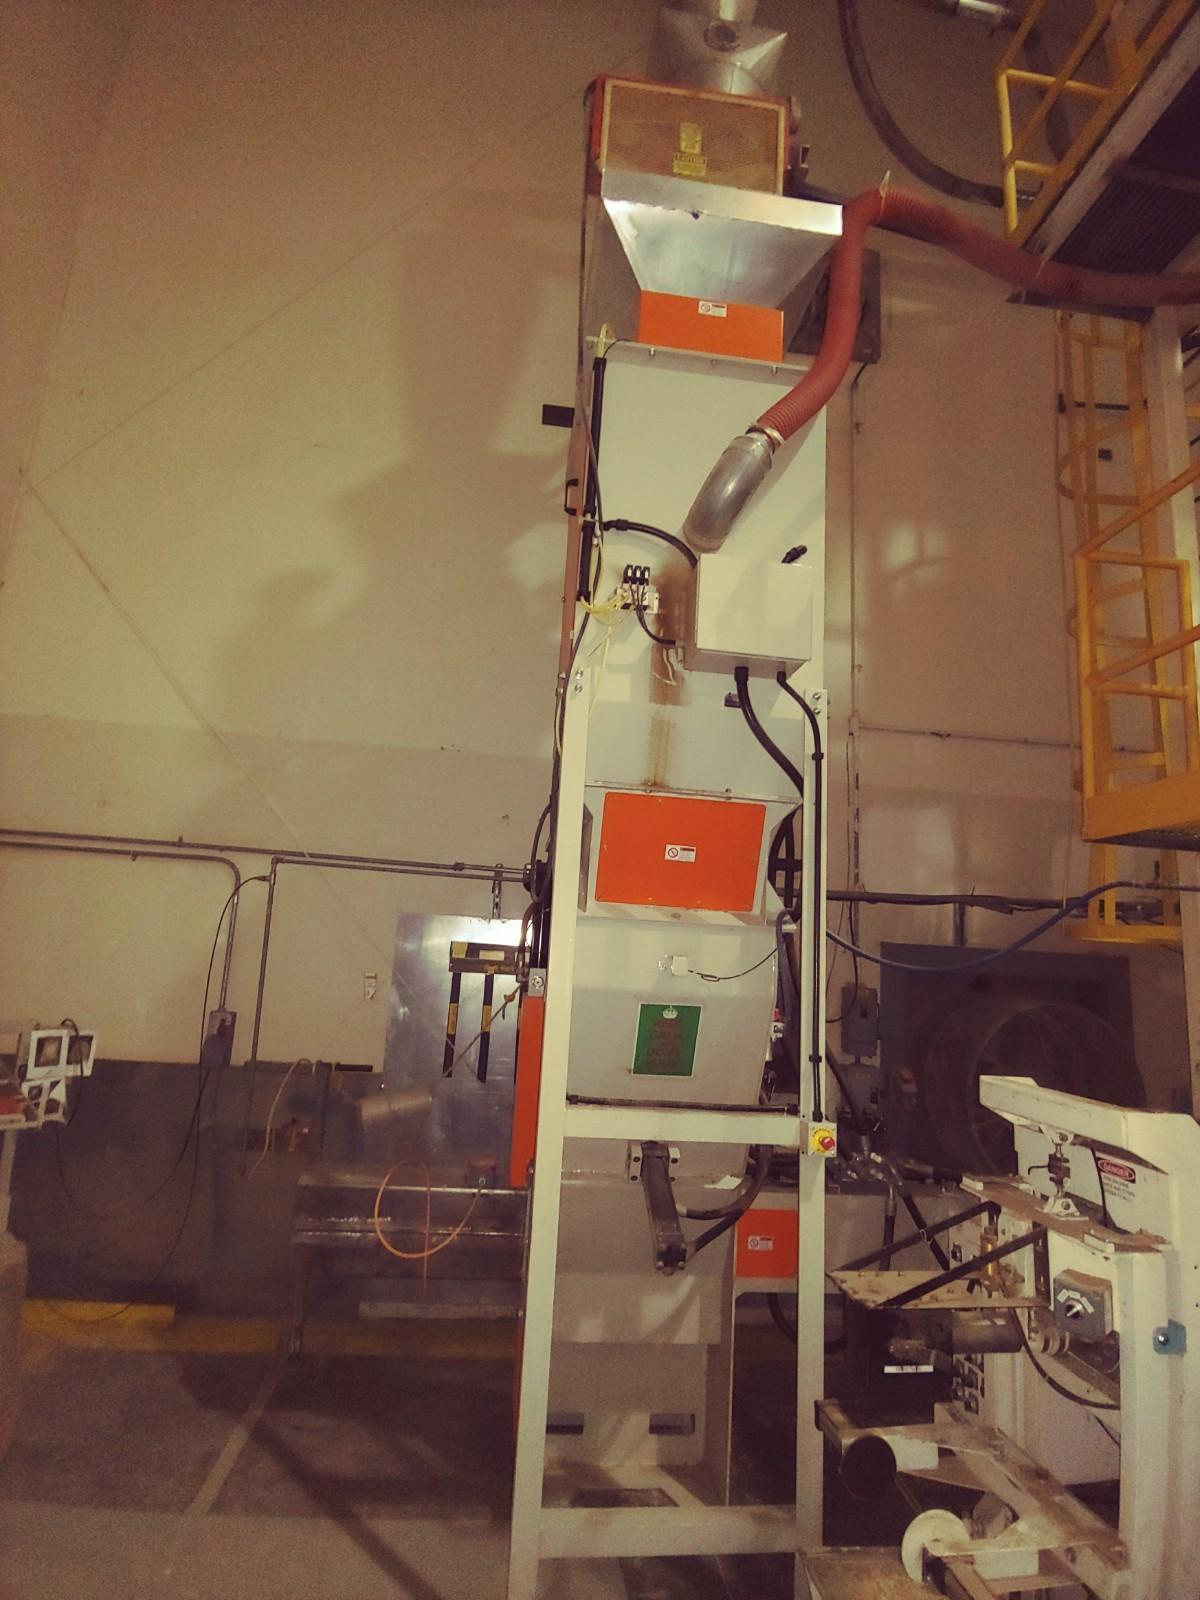 Rethceif Packaging BullyBagger Horizontal Compression Bagger 2017 with: Stand-Alone Heat Sealer and Pre-Weigh